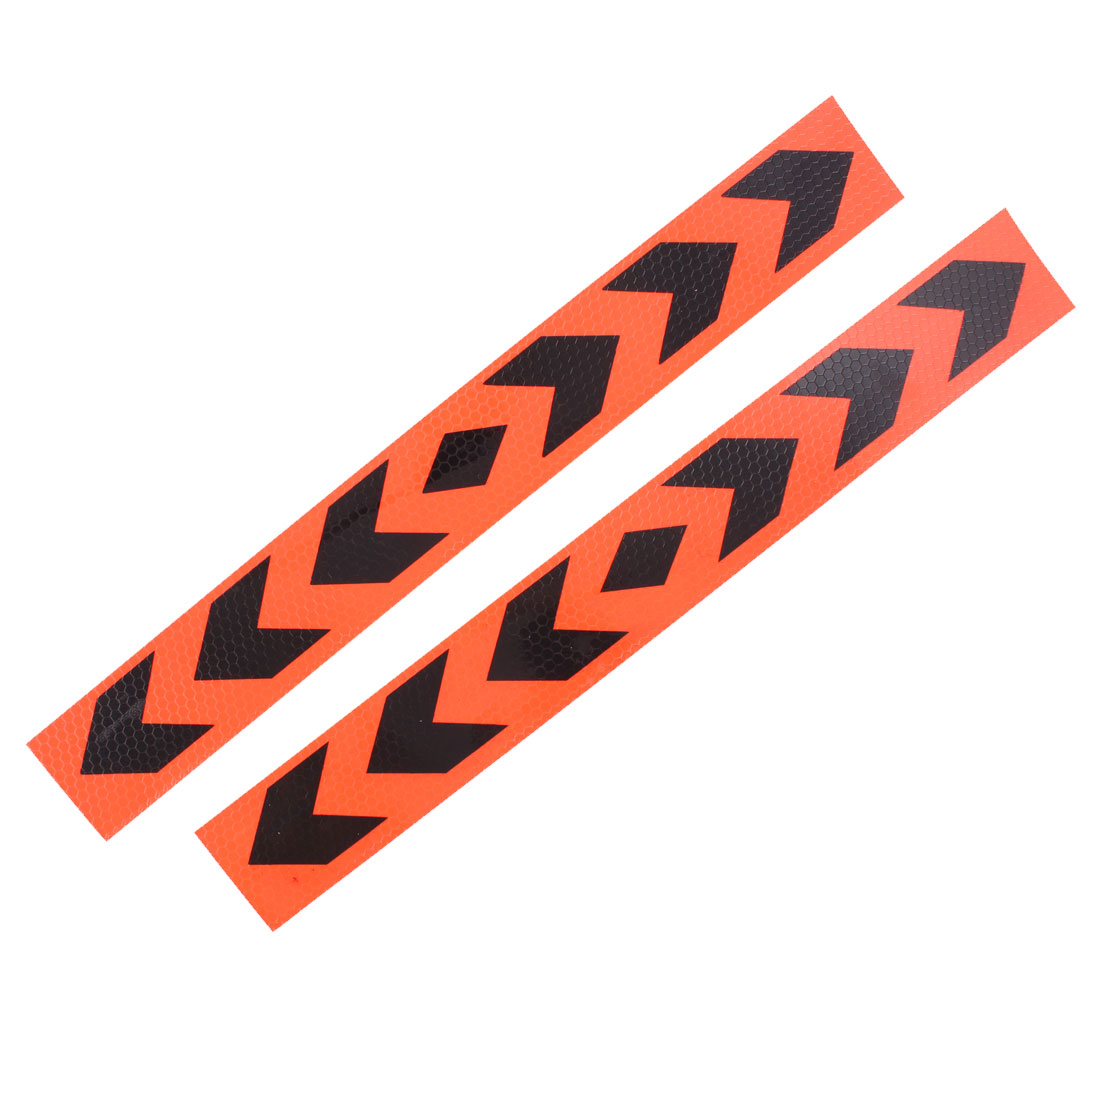 2 Pcs 40cm x 5cm Arrows Pattern Car Reflective Stickers Decals Orange Black